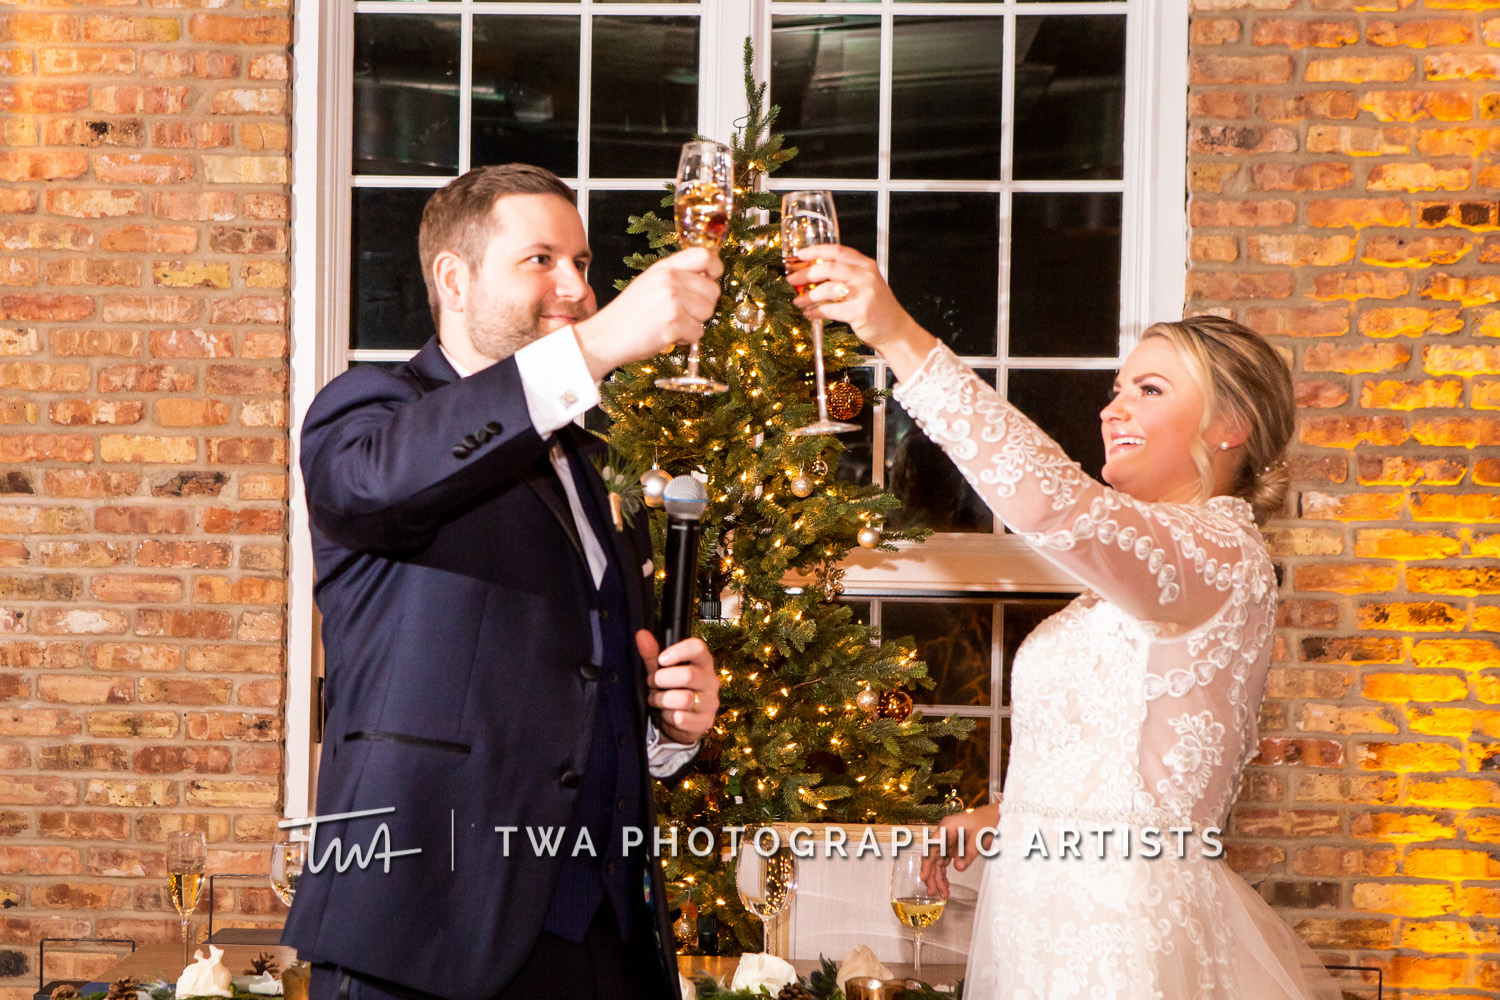 Bride and groom cheering at winter wedding